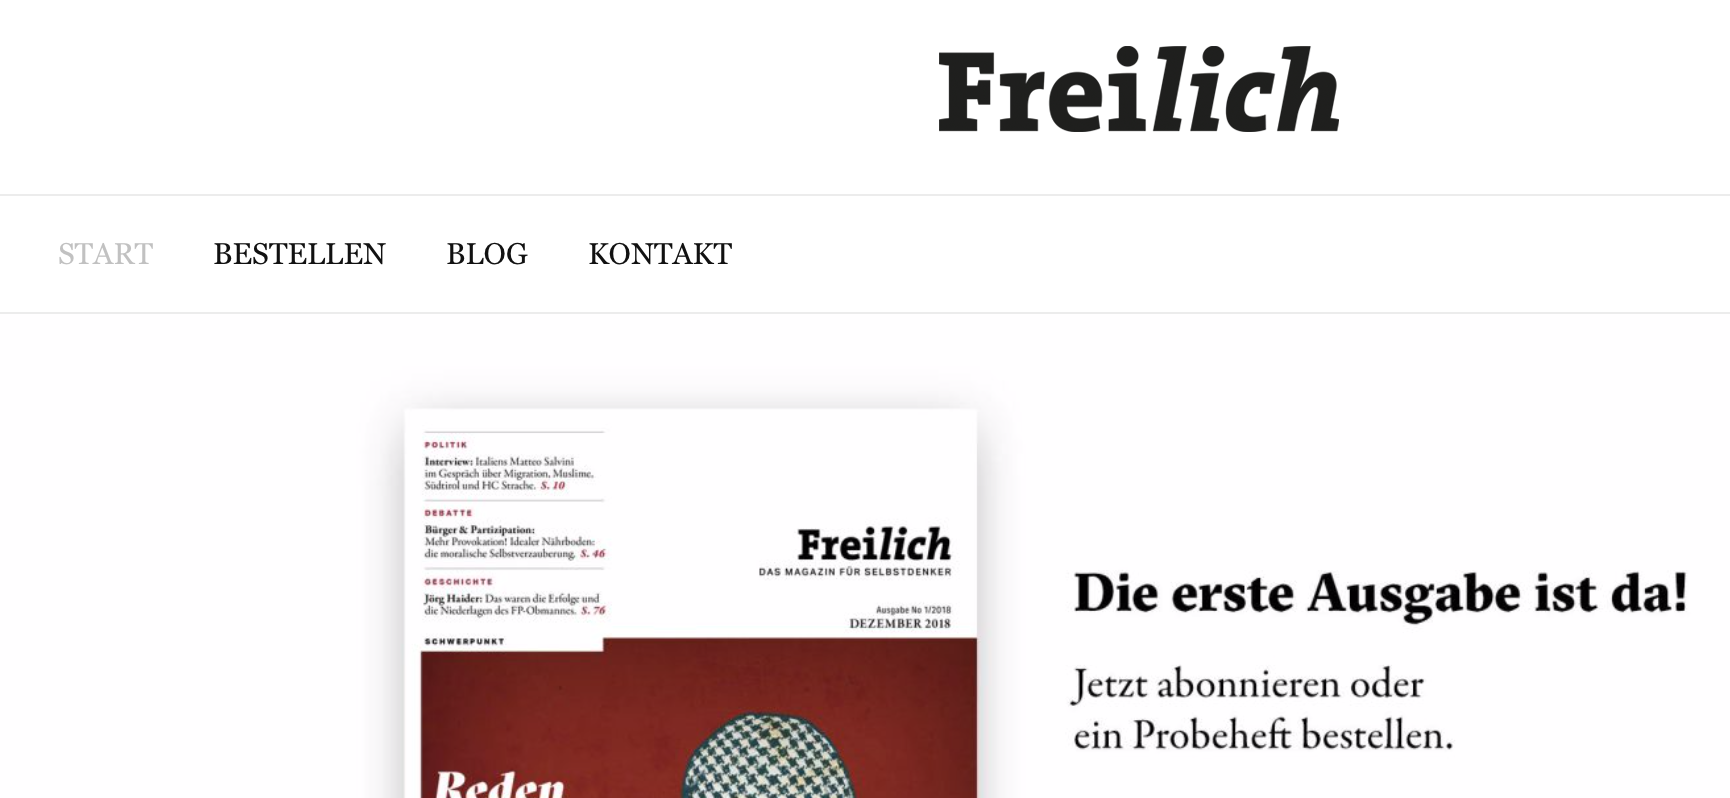 Freilich-Magazin Website